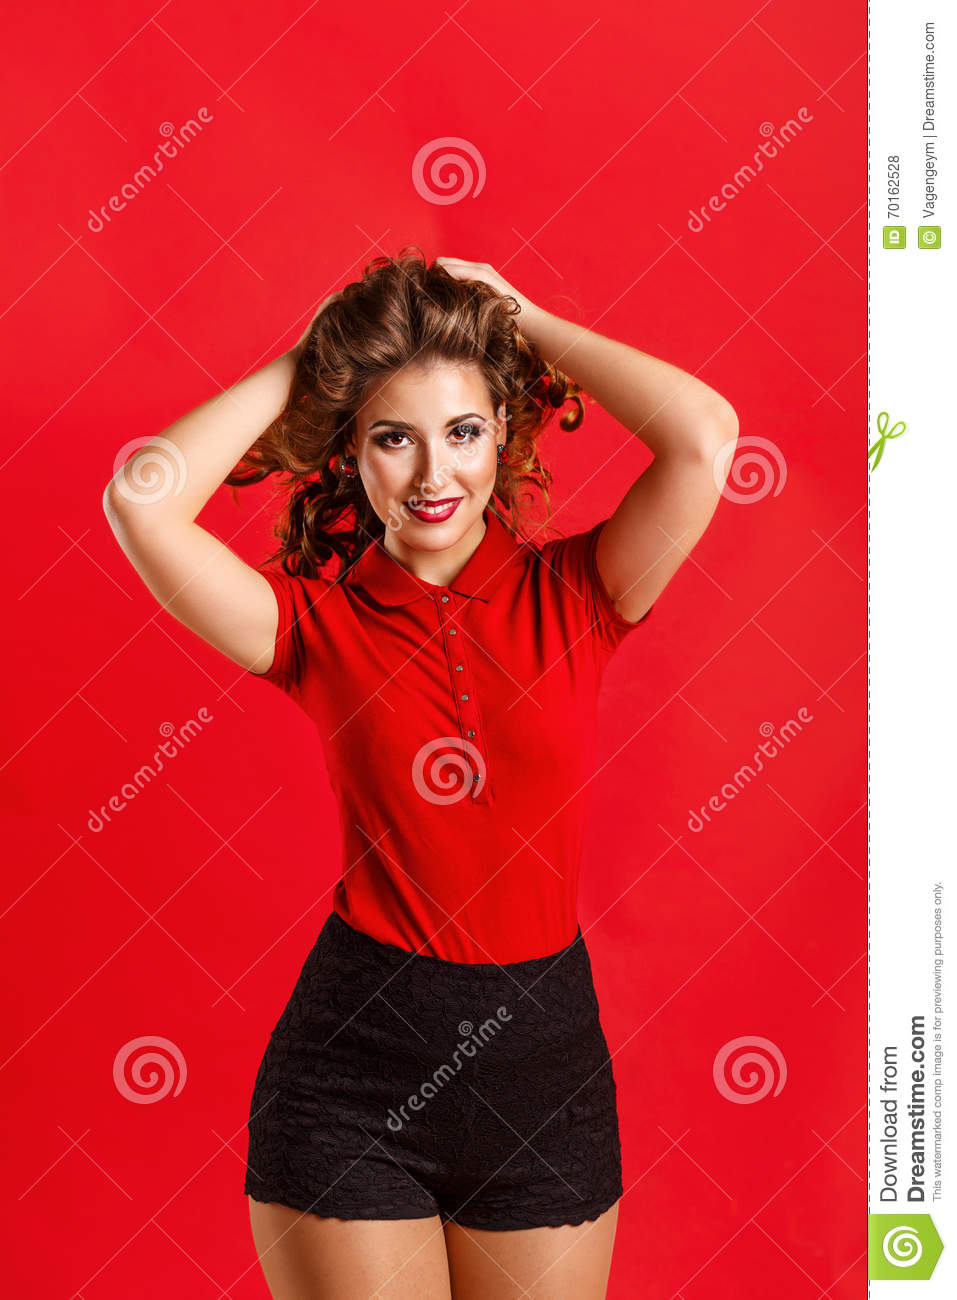 Girl In Red Shirt And Shorts Stock Photo - Image: 70162528